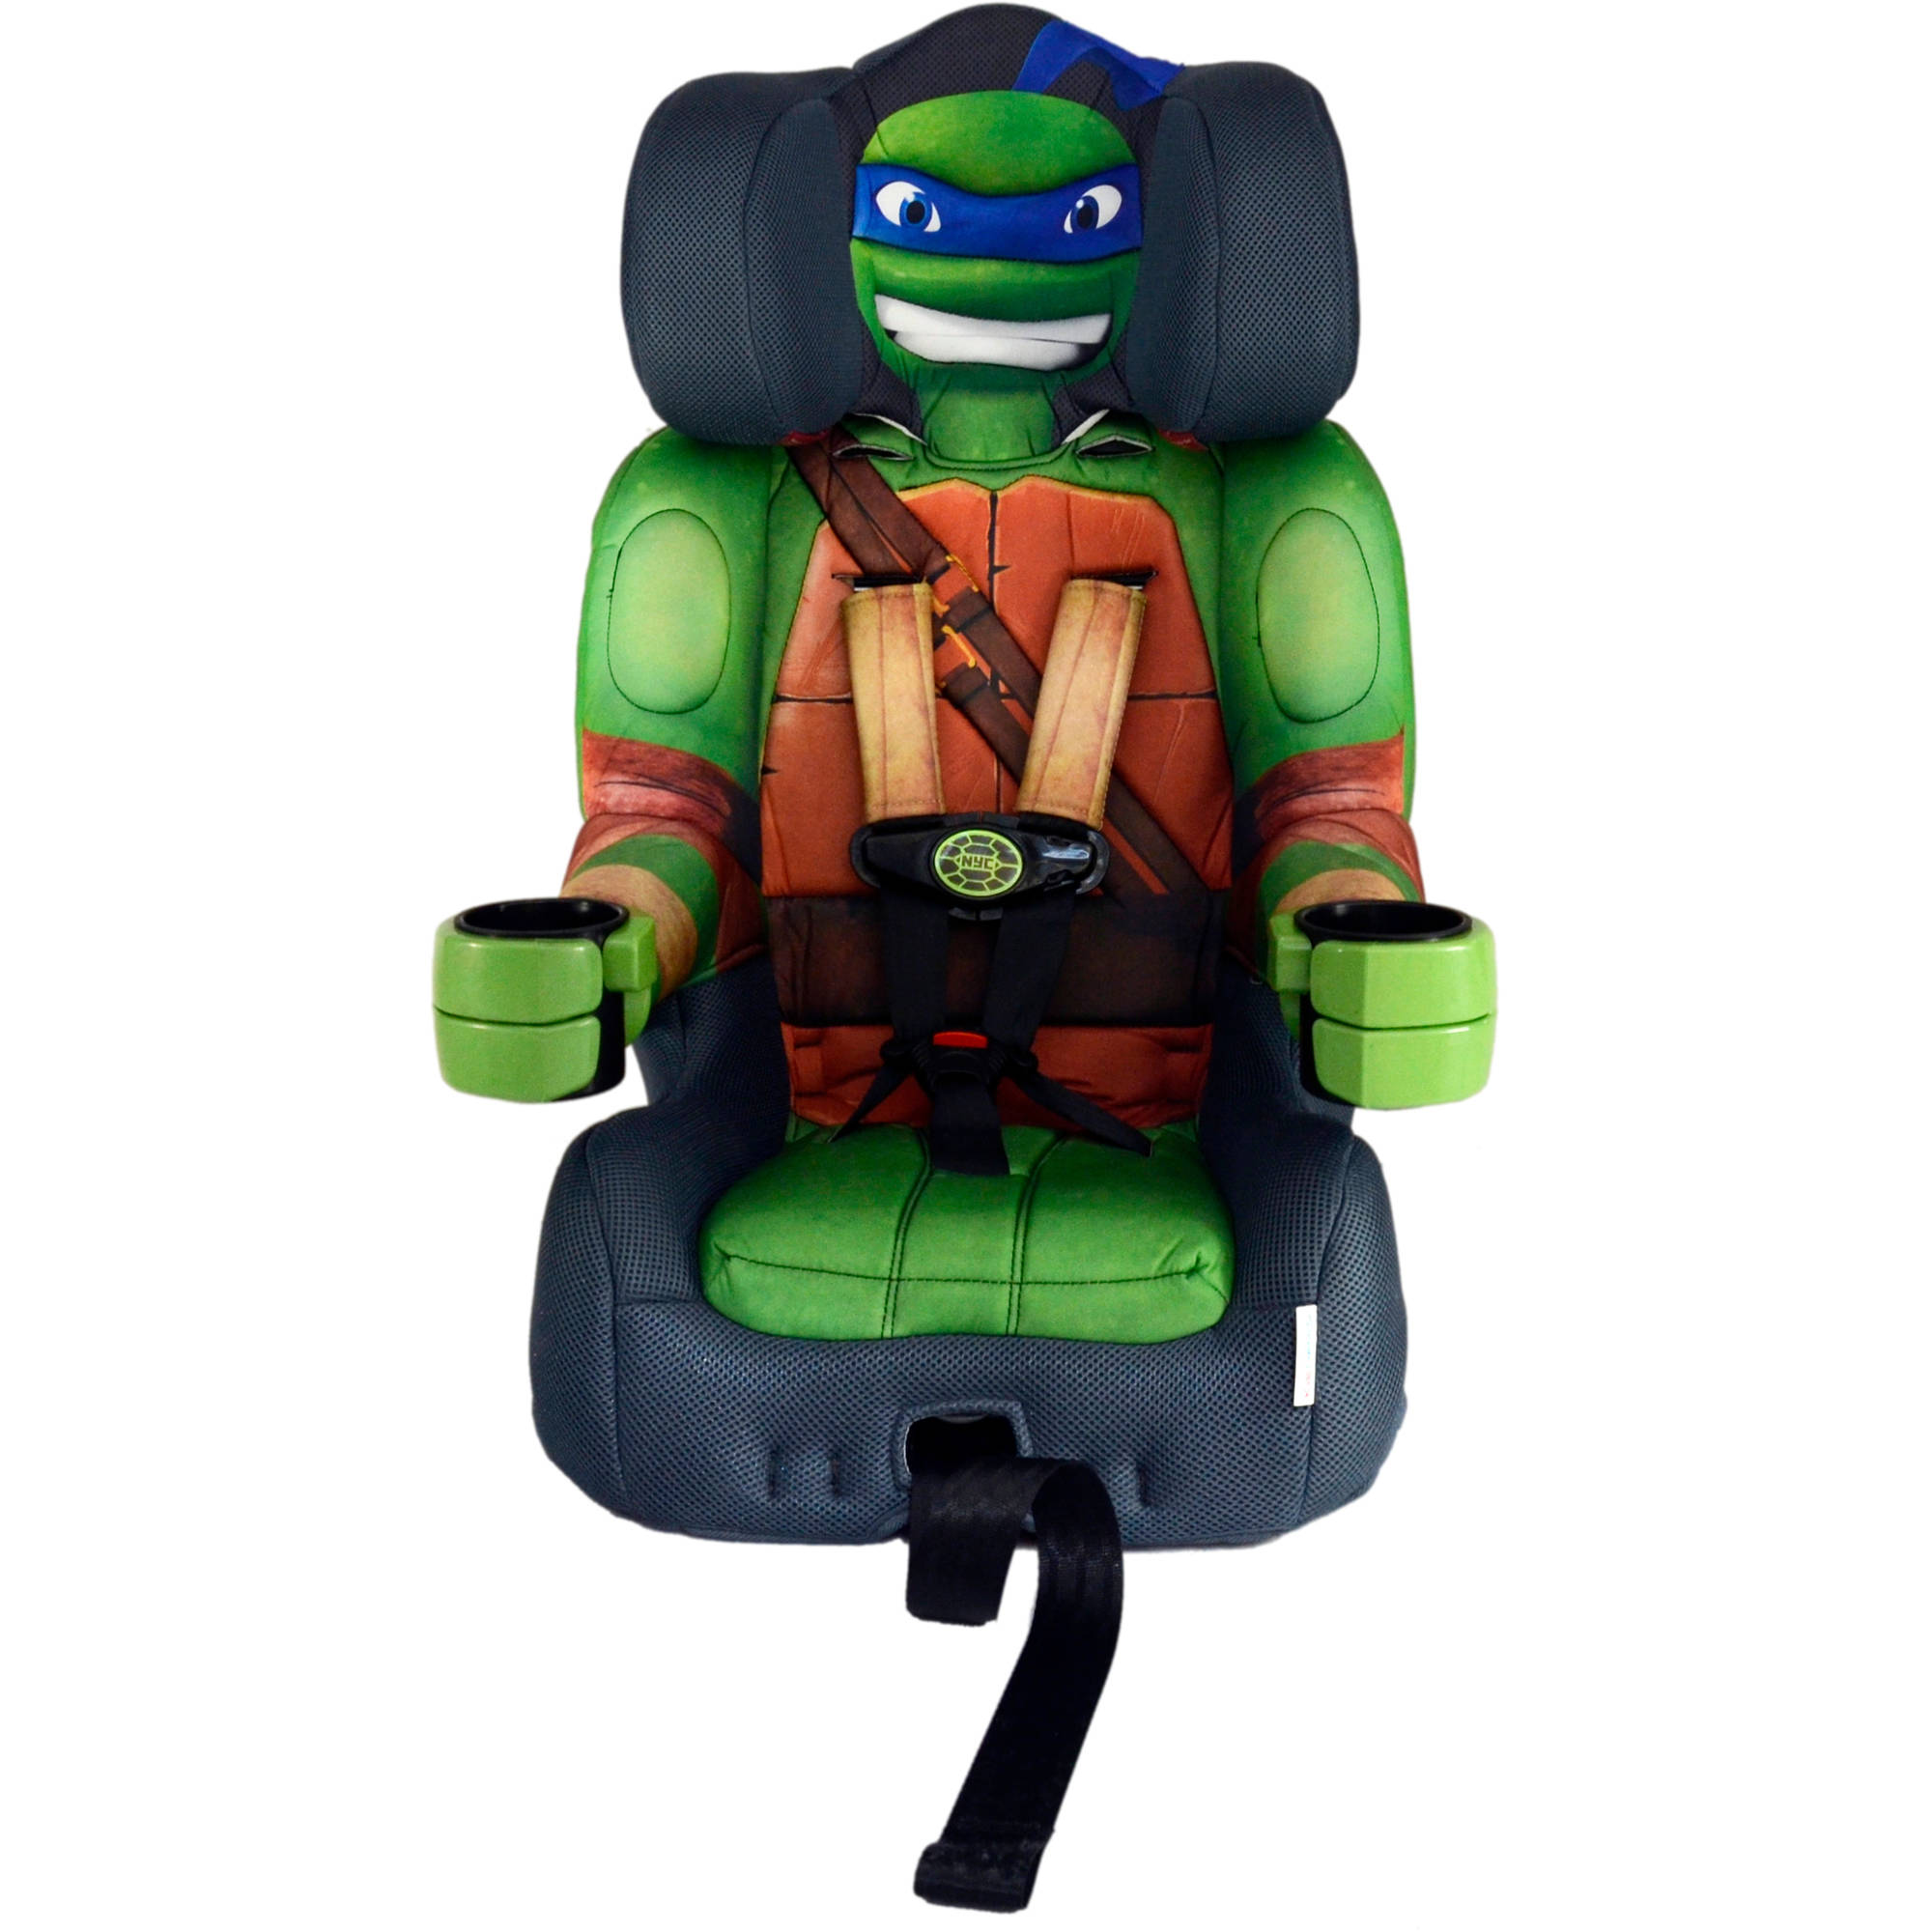 KidsEmbrace Teenage Mutant Ninja Turtles Combination Booster Car Seat